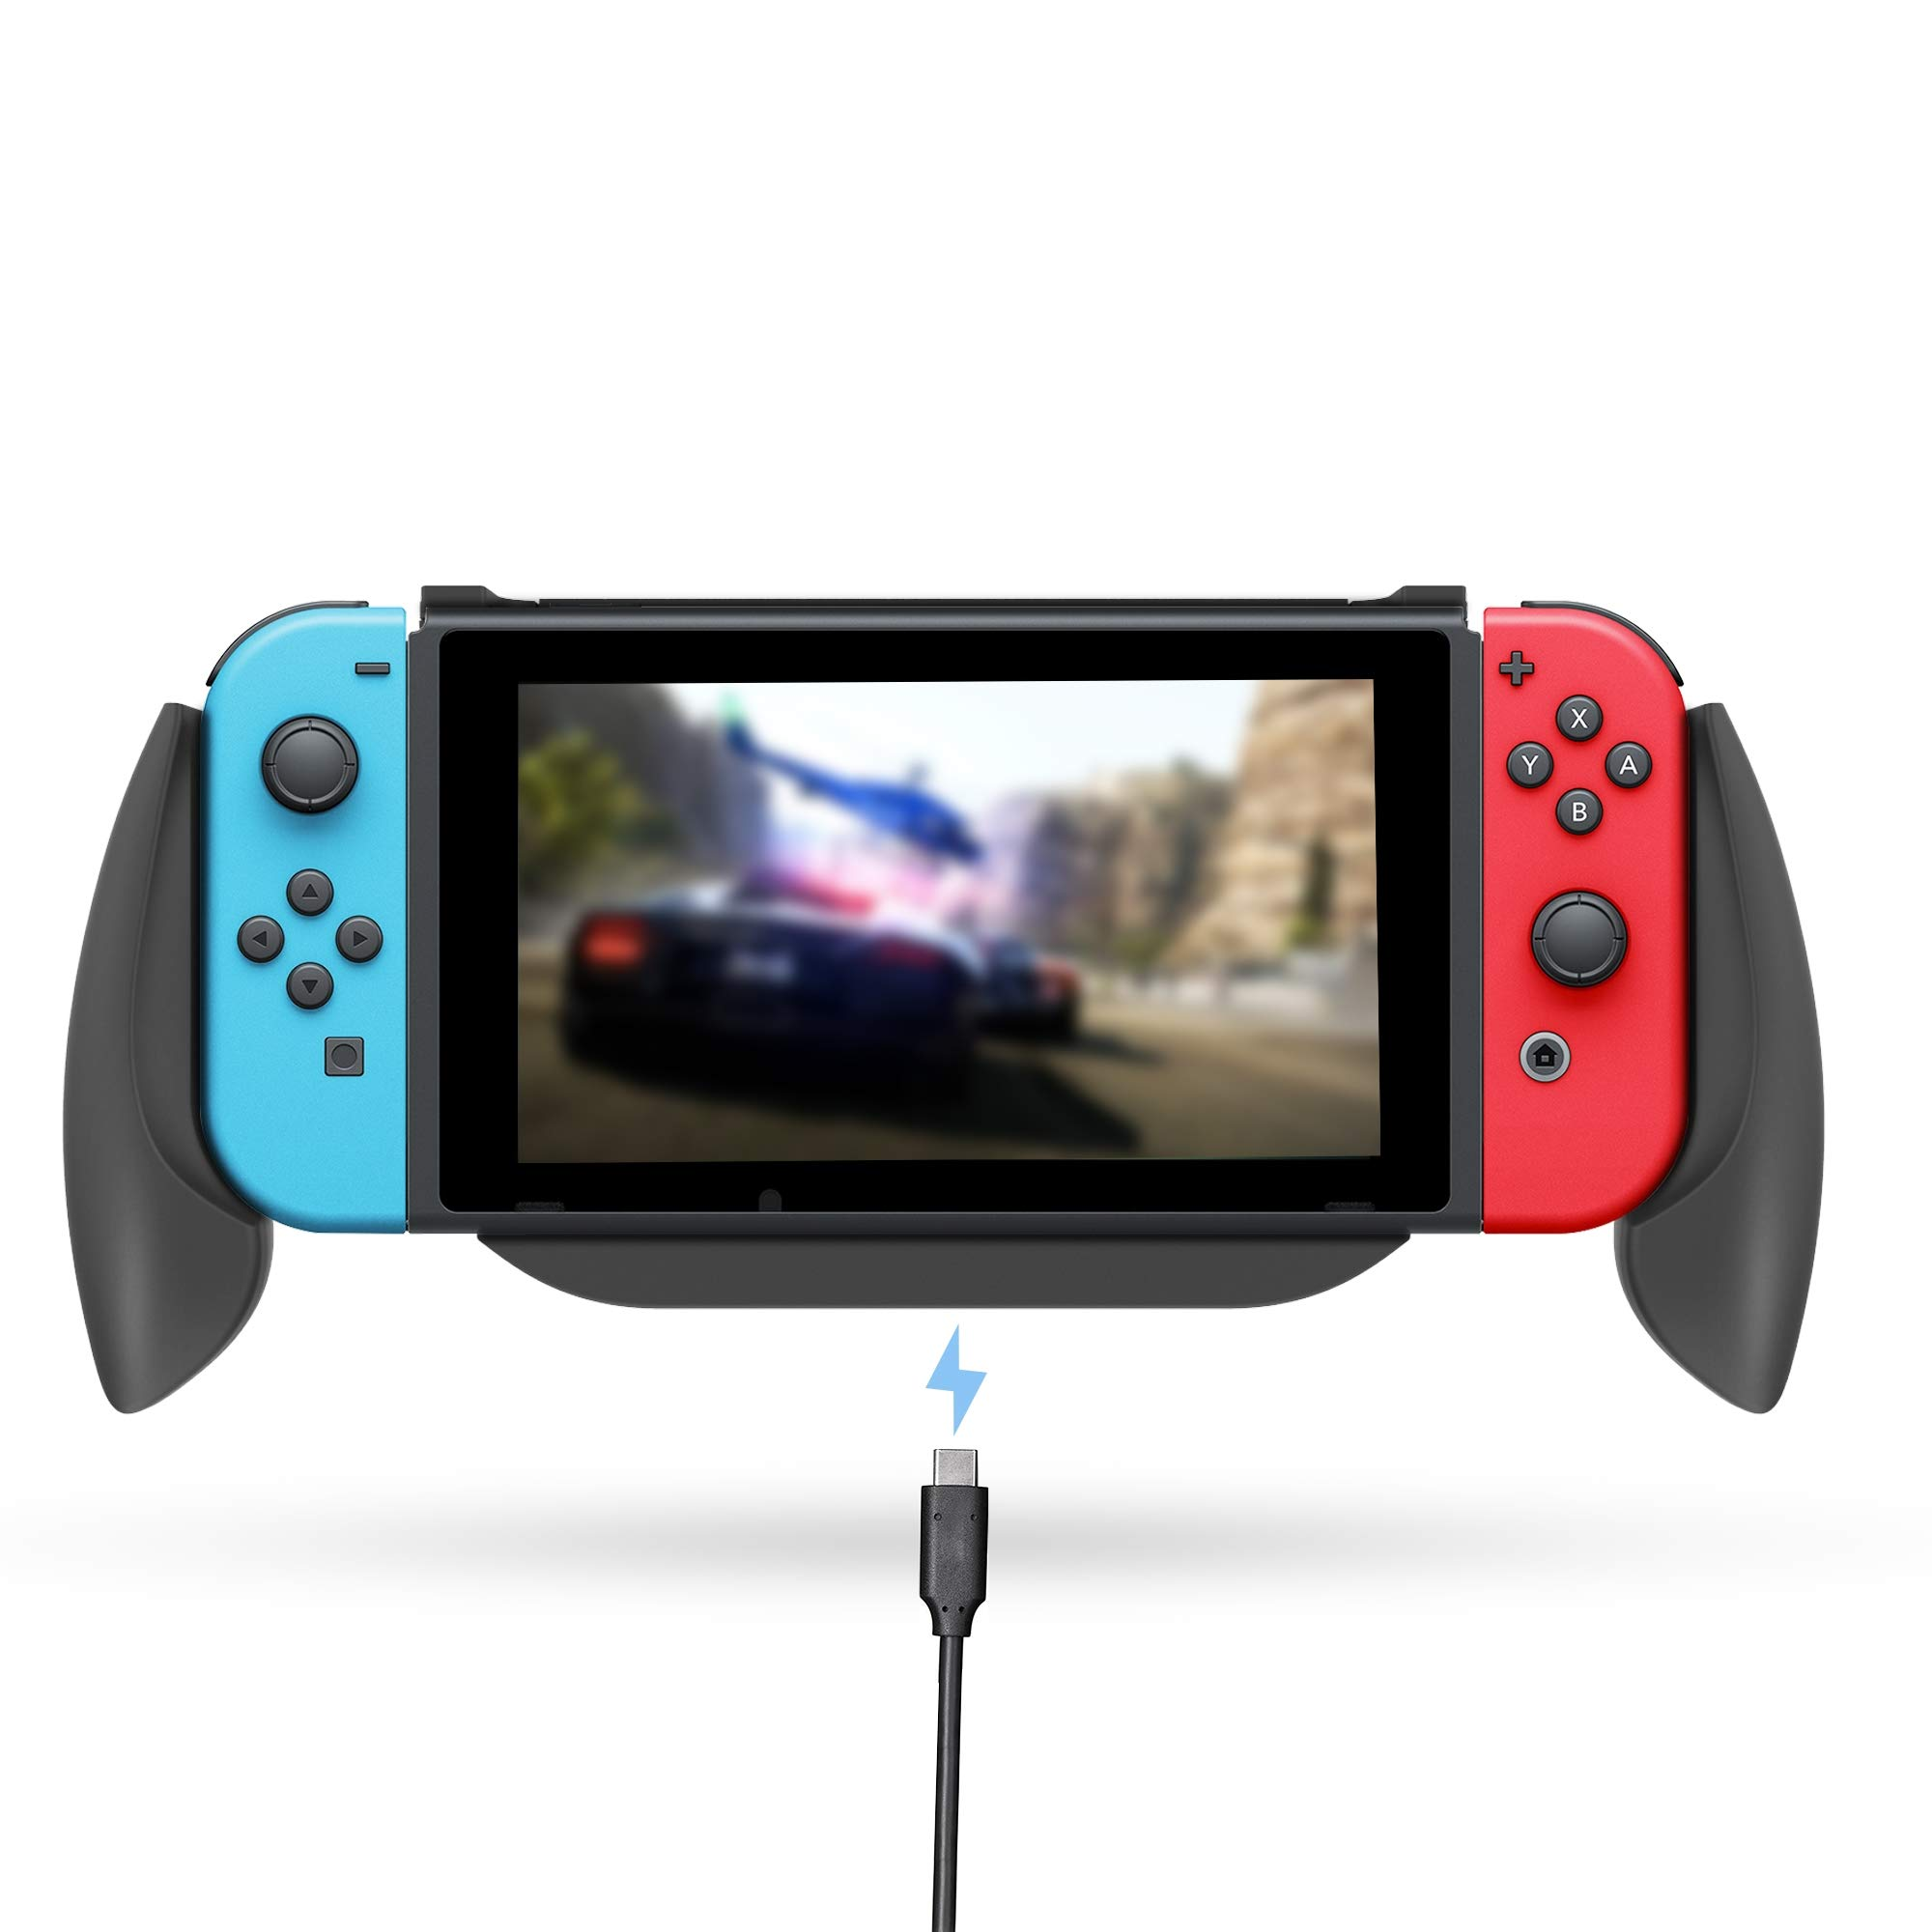 Lammcou Charging Grip for Nintendo Switch Comfort Charge Handle Stand Quick Charge Compatible 5V 2A AC Adapter, USB Charger with Type-C Cable for Nintendo Switch Console & Joy-con Controllers - Black by Lammcou